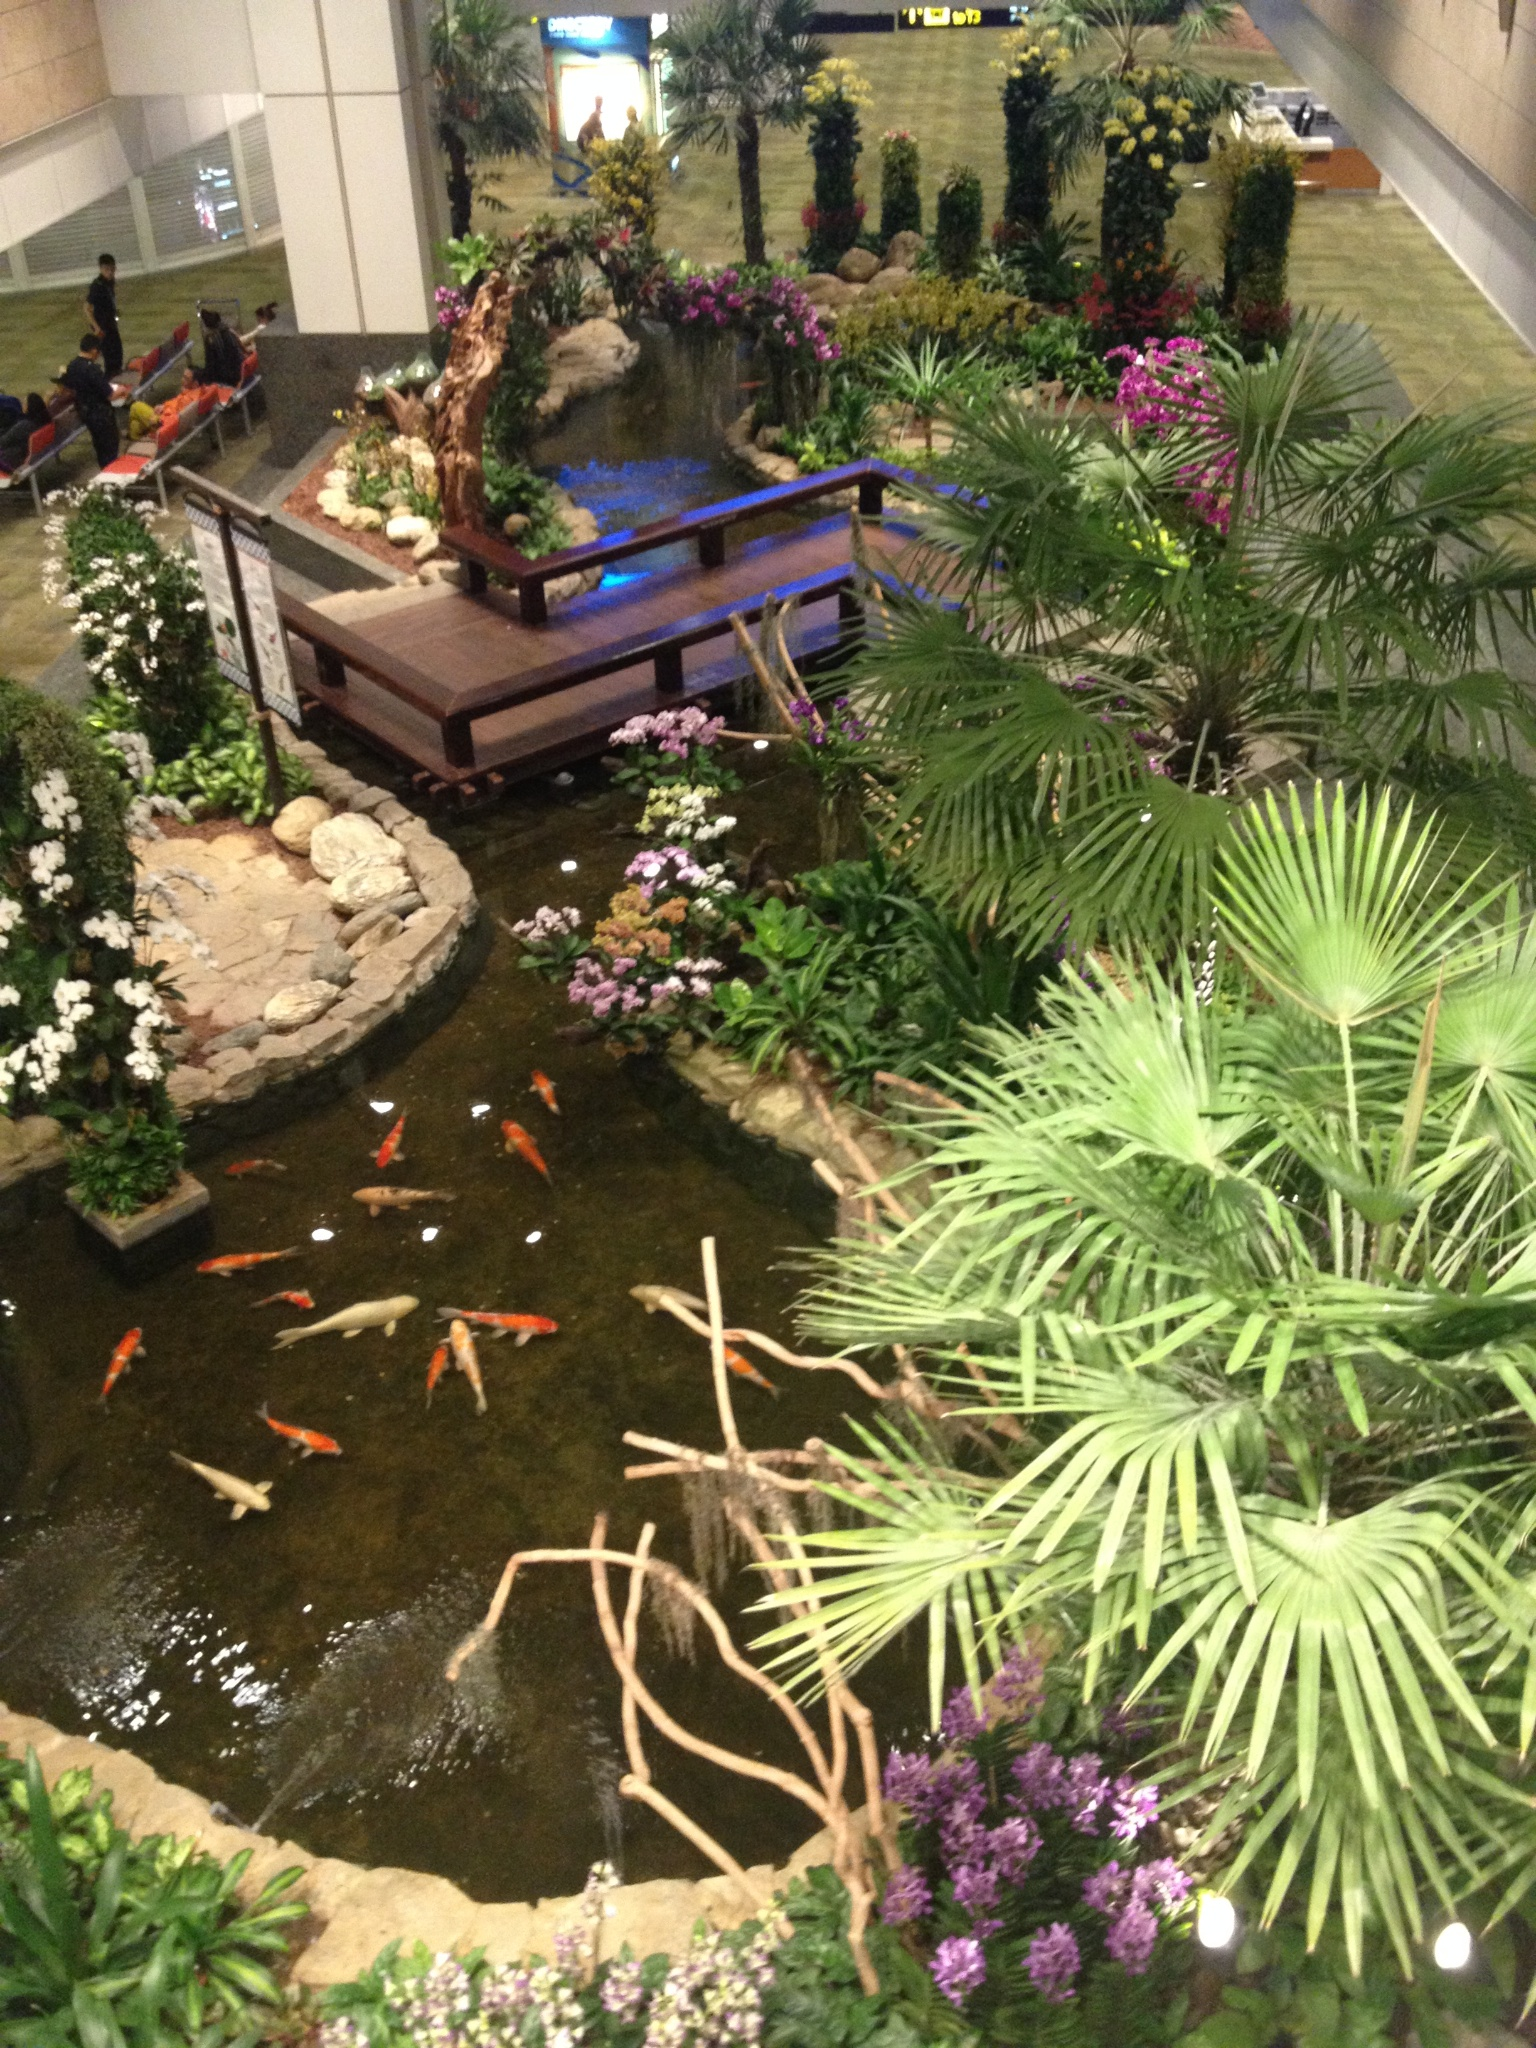 The Singapore airport is quite nice, for an airport. There are lots of garden areas set-up in many parts of the airport. This nice koi pond offered a distraction for a while during my layover.